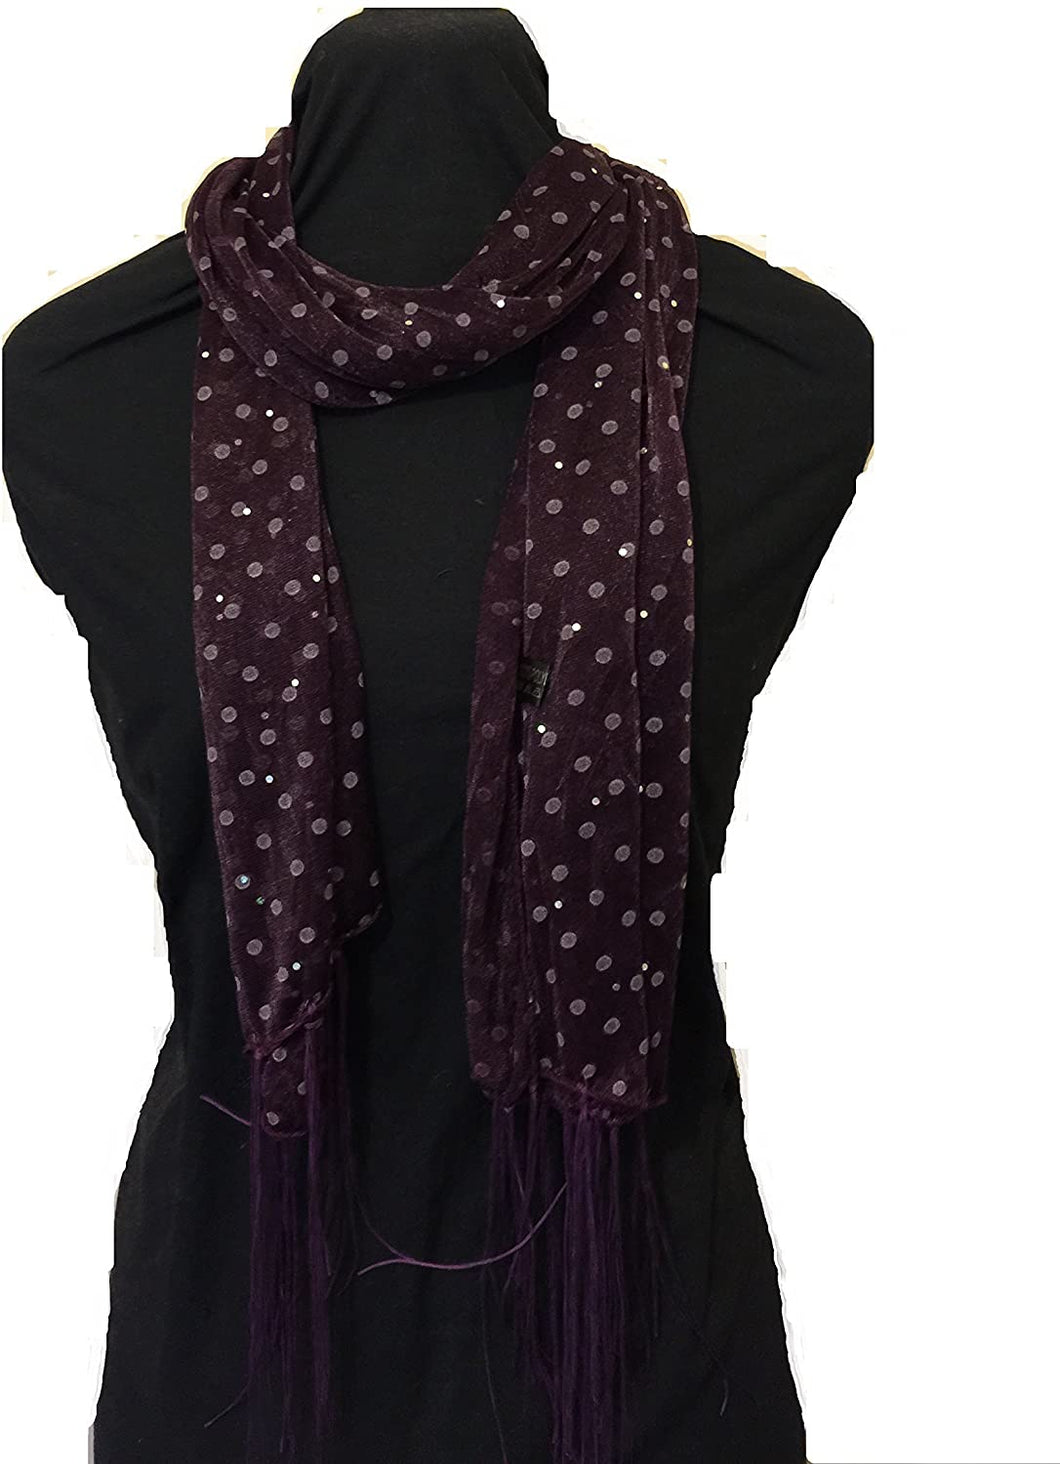 Pamper Yourself Now Purple Spotty Print Long Thin Shiny Scarf with Pretty Sparkle Lovely for Evening wear